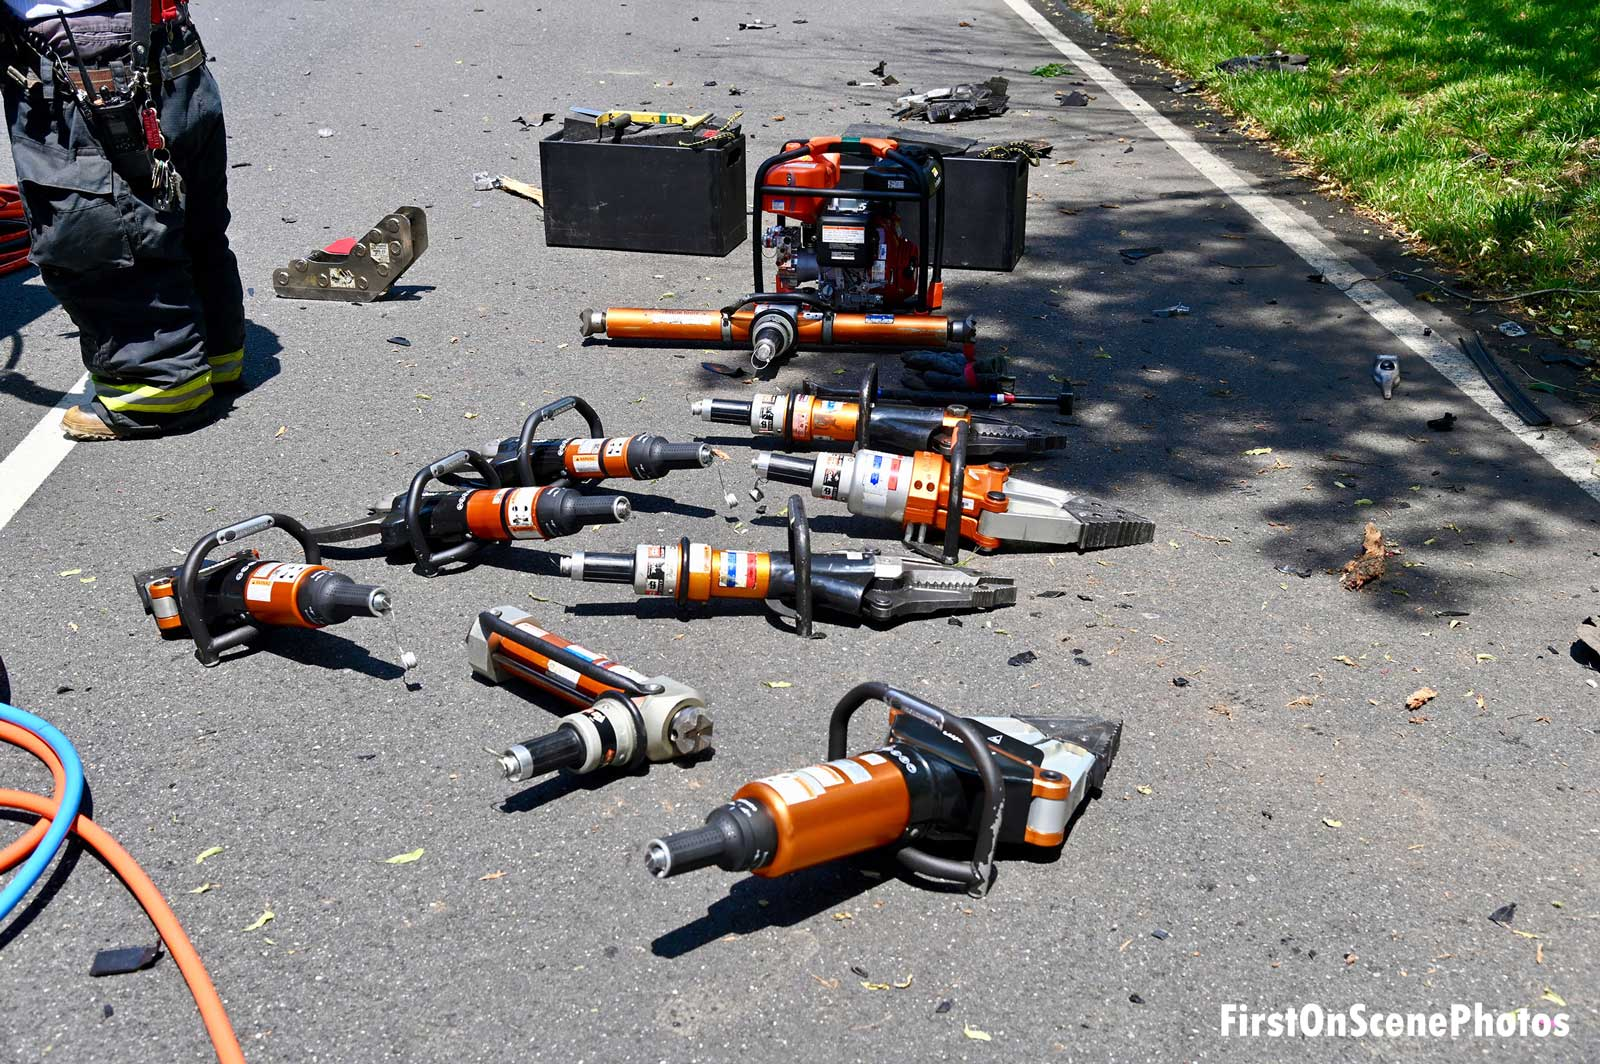 An array of extrication tools at the scene of the motor vehicle accident